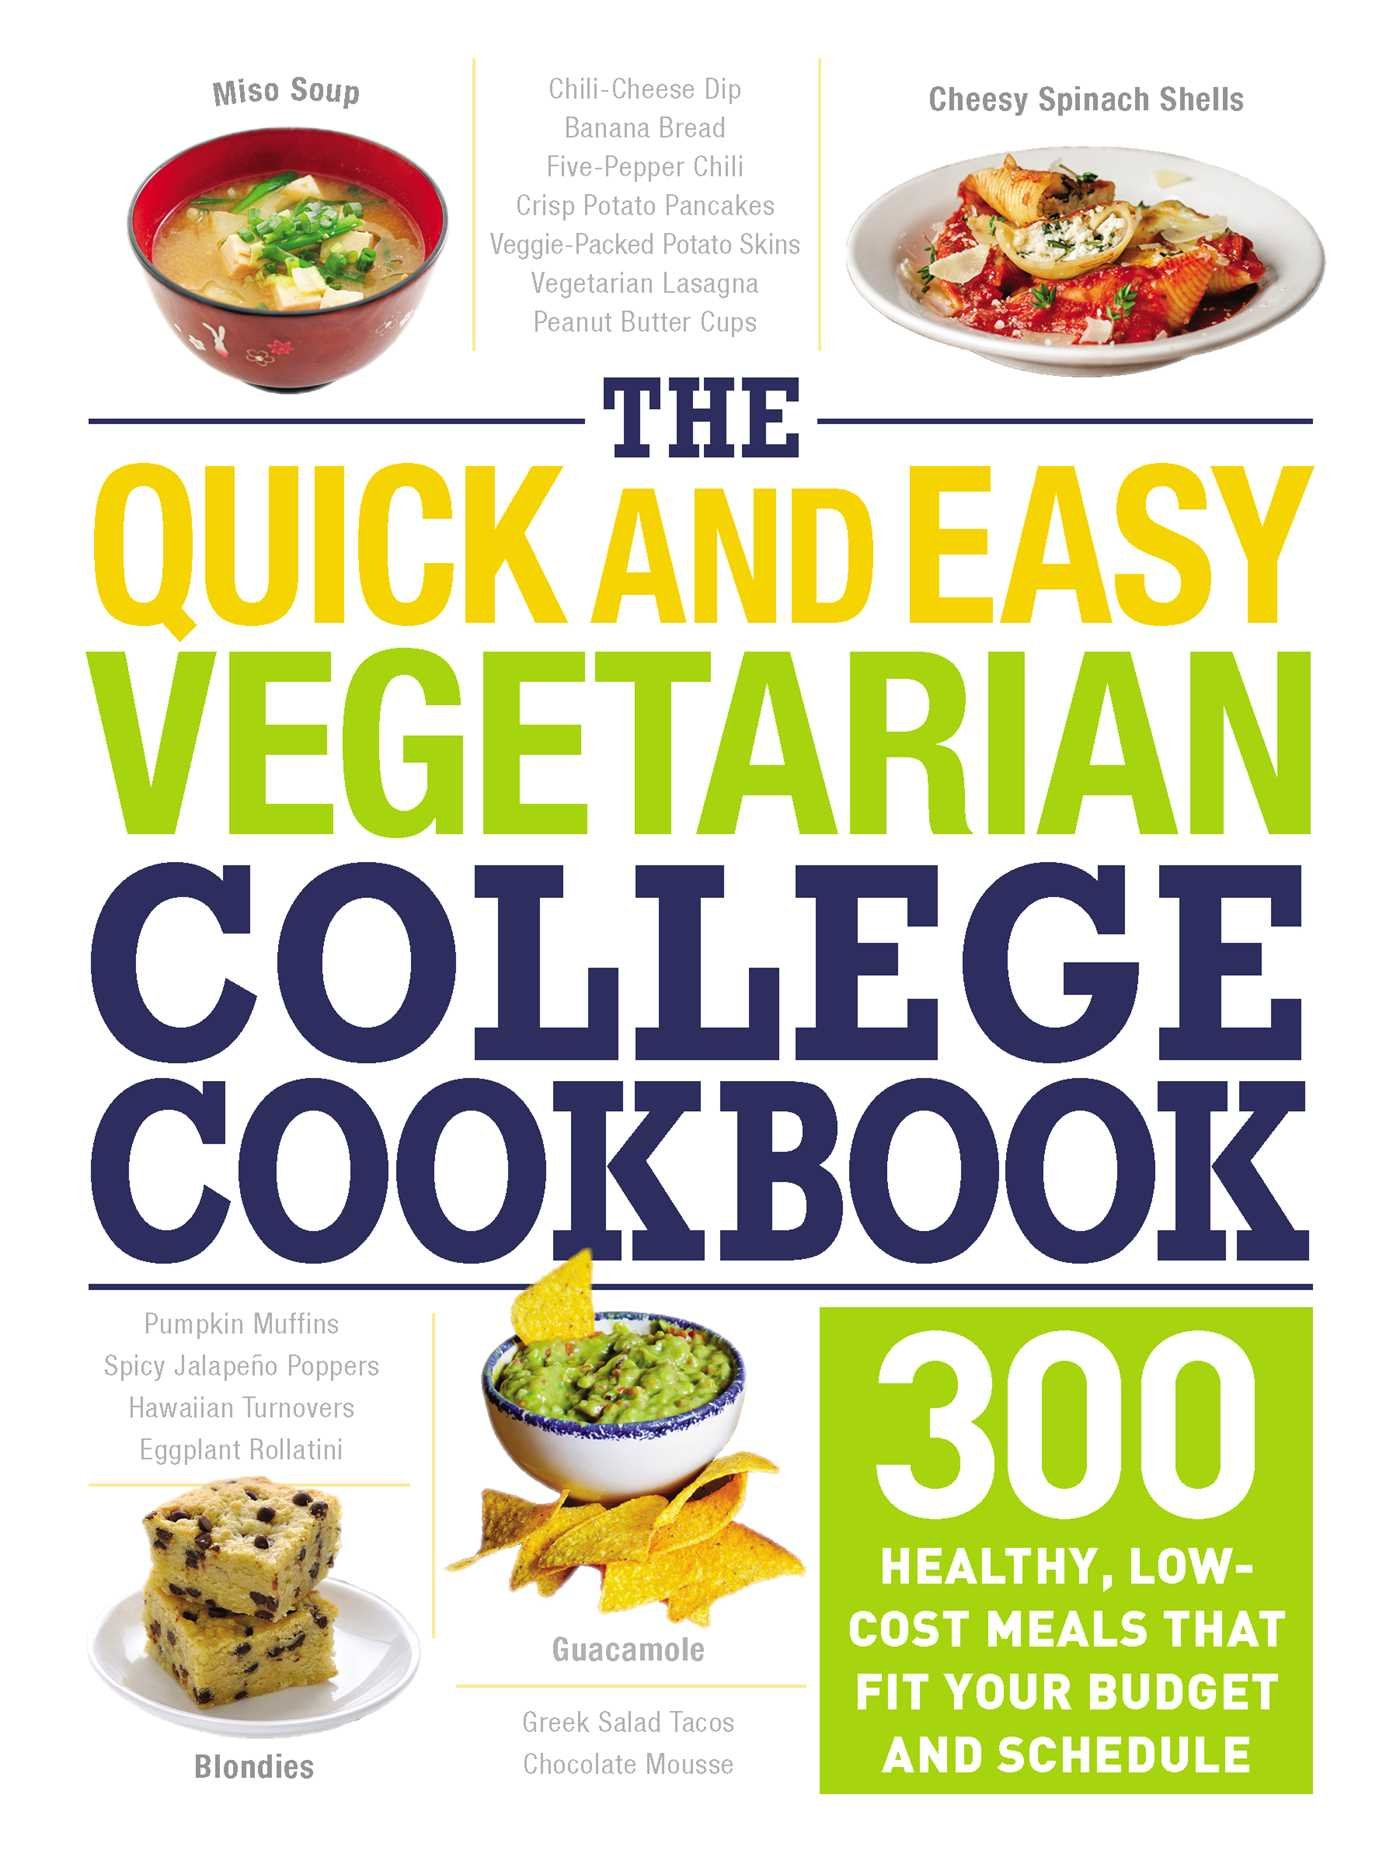 The Quick and Easy Vegetarian College Cookbook: 300 Healthy, Low-Cost Meals  That Fit Your Budget and Schedule: Adams Media: 9781507204191: Amazon.com:  Books